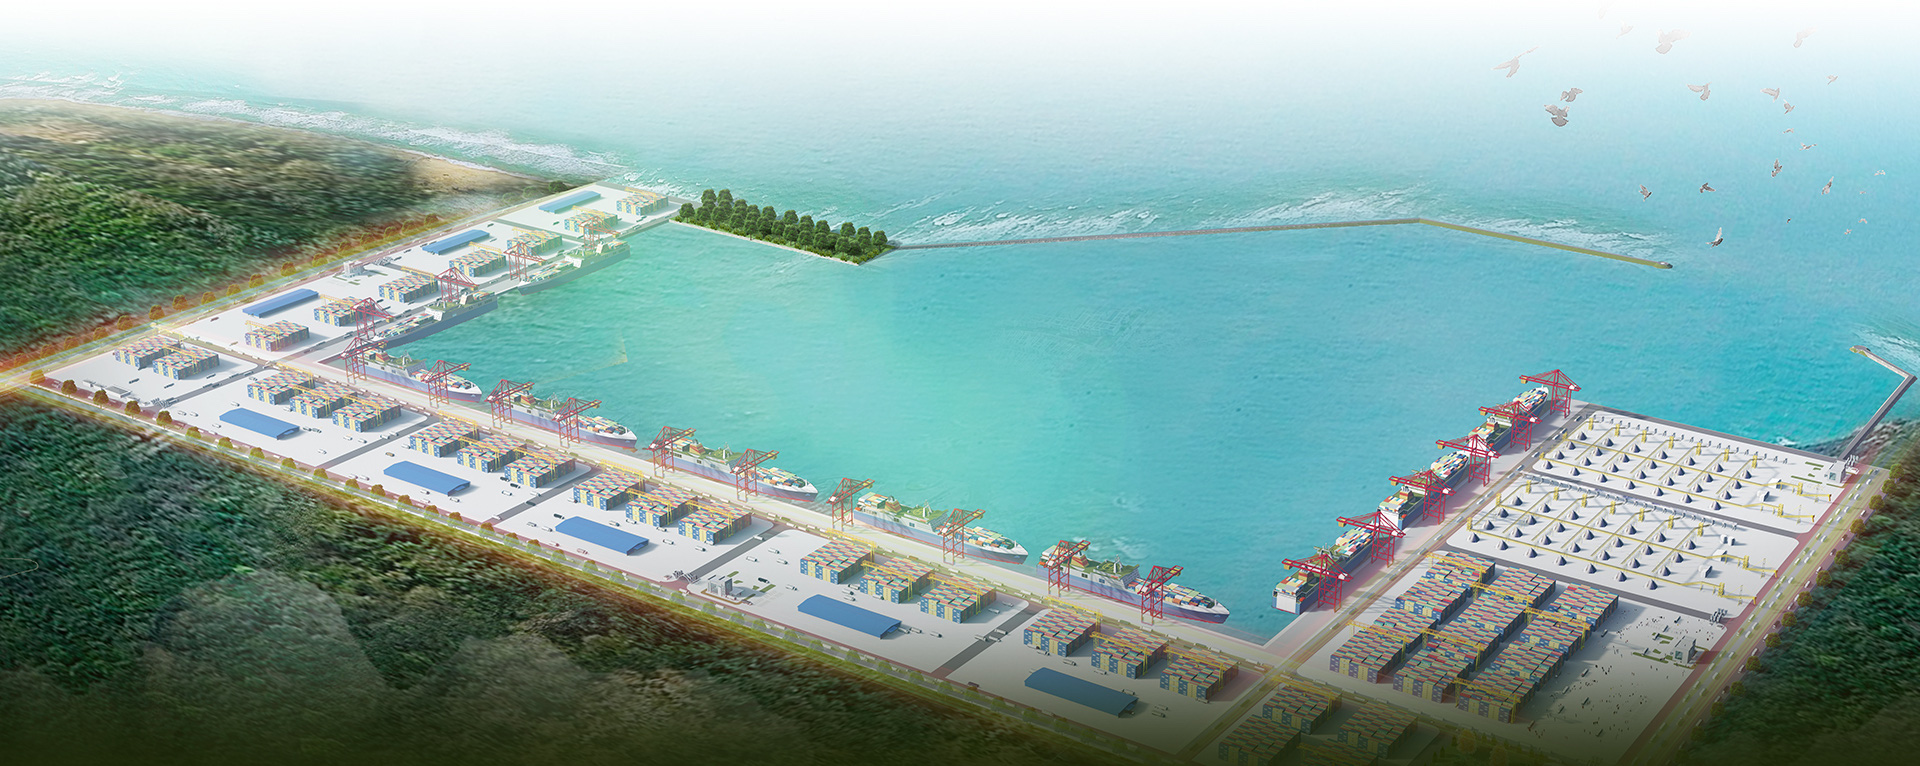 A model of My Thuy Harbour provided by Quang Tri Province People's Committee. The harbour is expected to be a gateway to Pacific Ocean for goods transported on the East-West Economic Corridor. Photo courtesy of Quang Tri Province Economic Zone Management Board